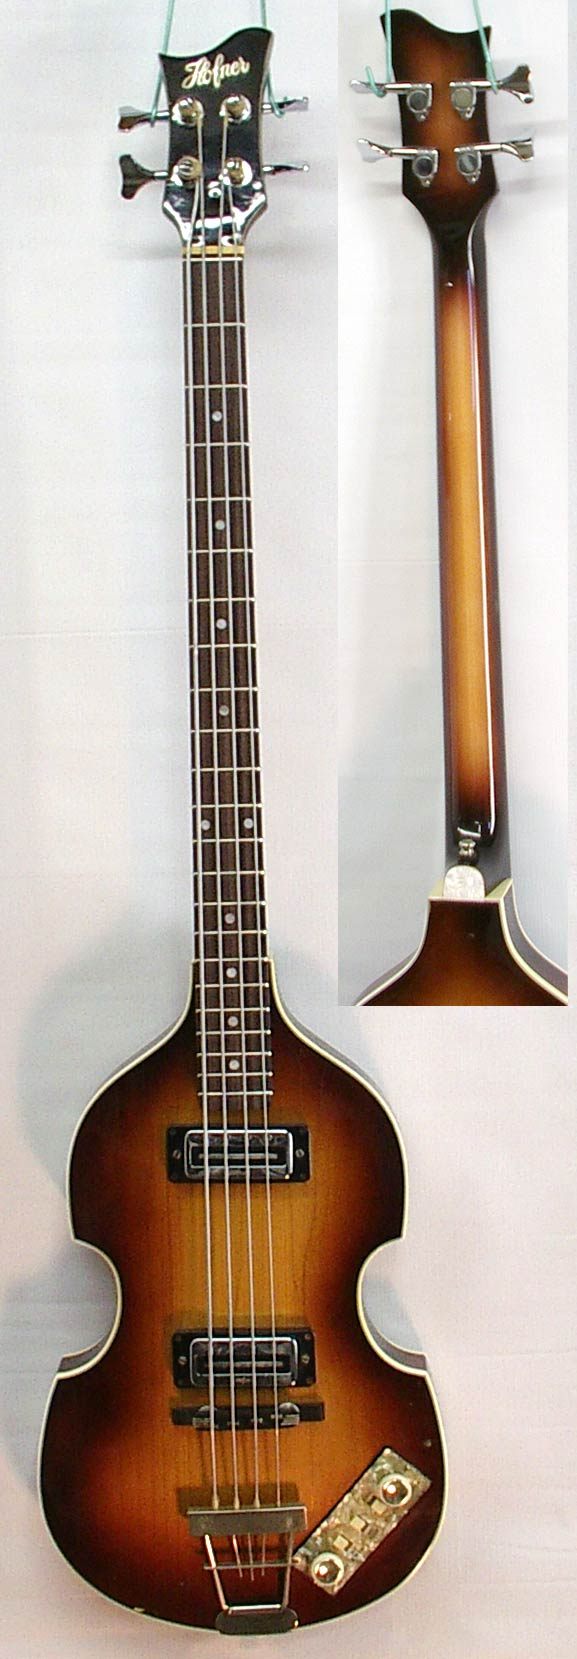 Hofner with new neck